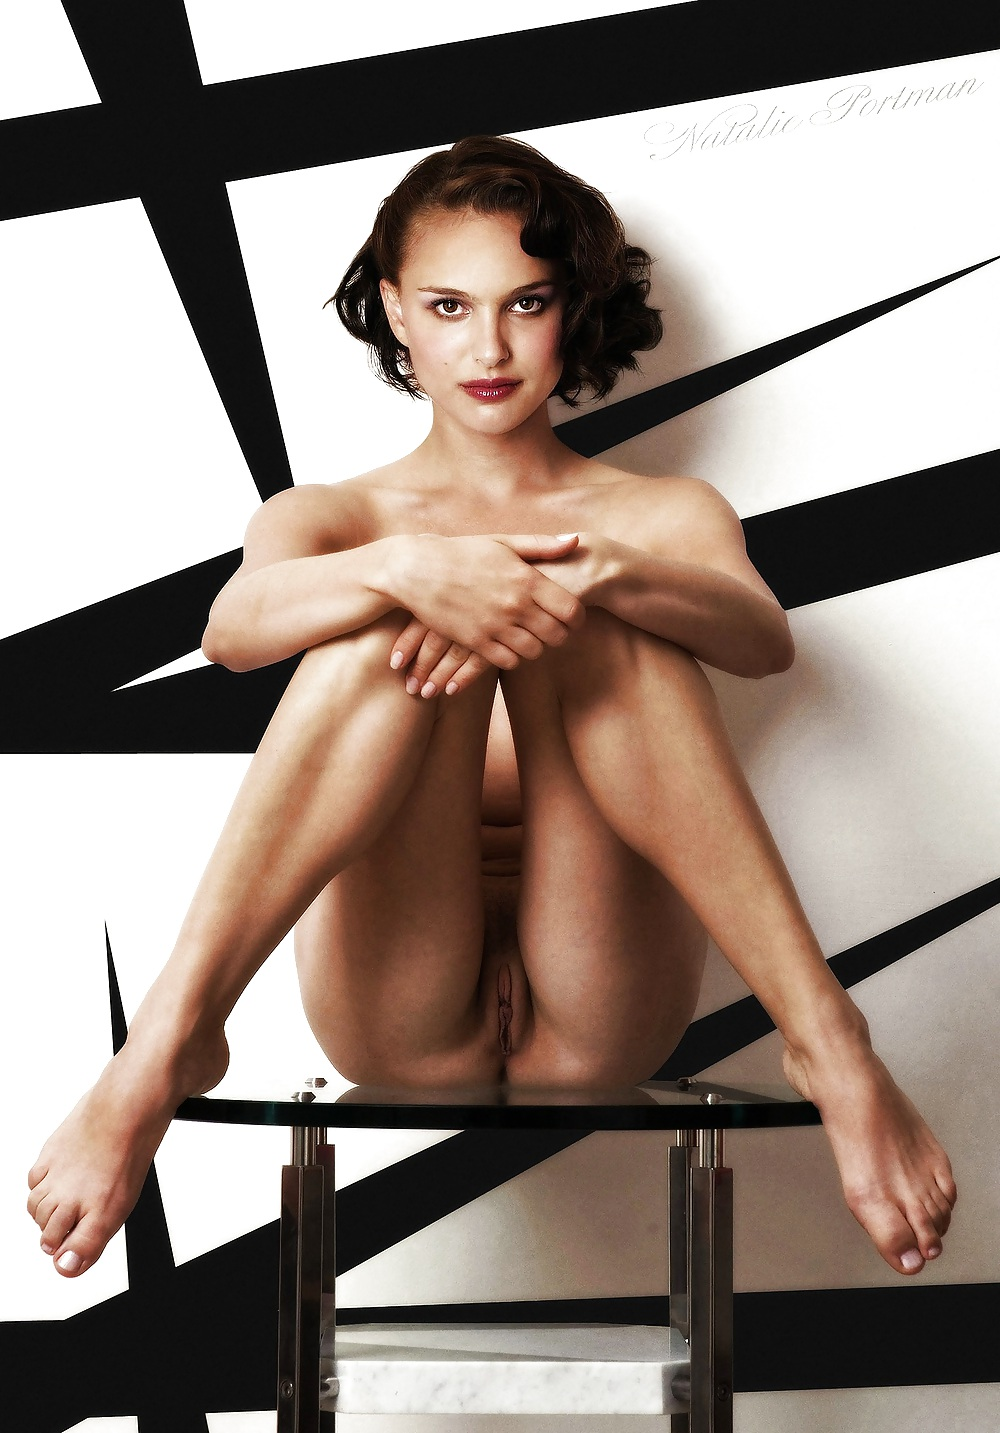 Natalie portman topless and extremely sexy pics top naked celebs